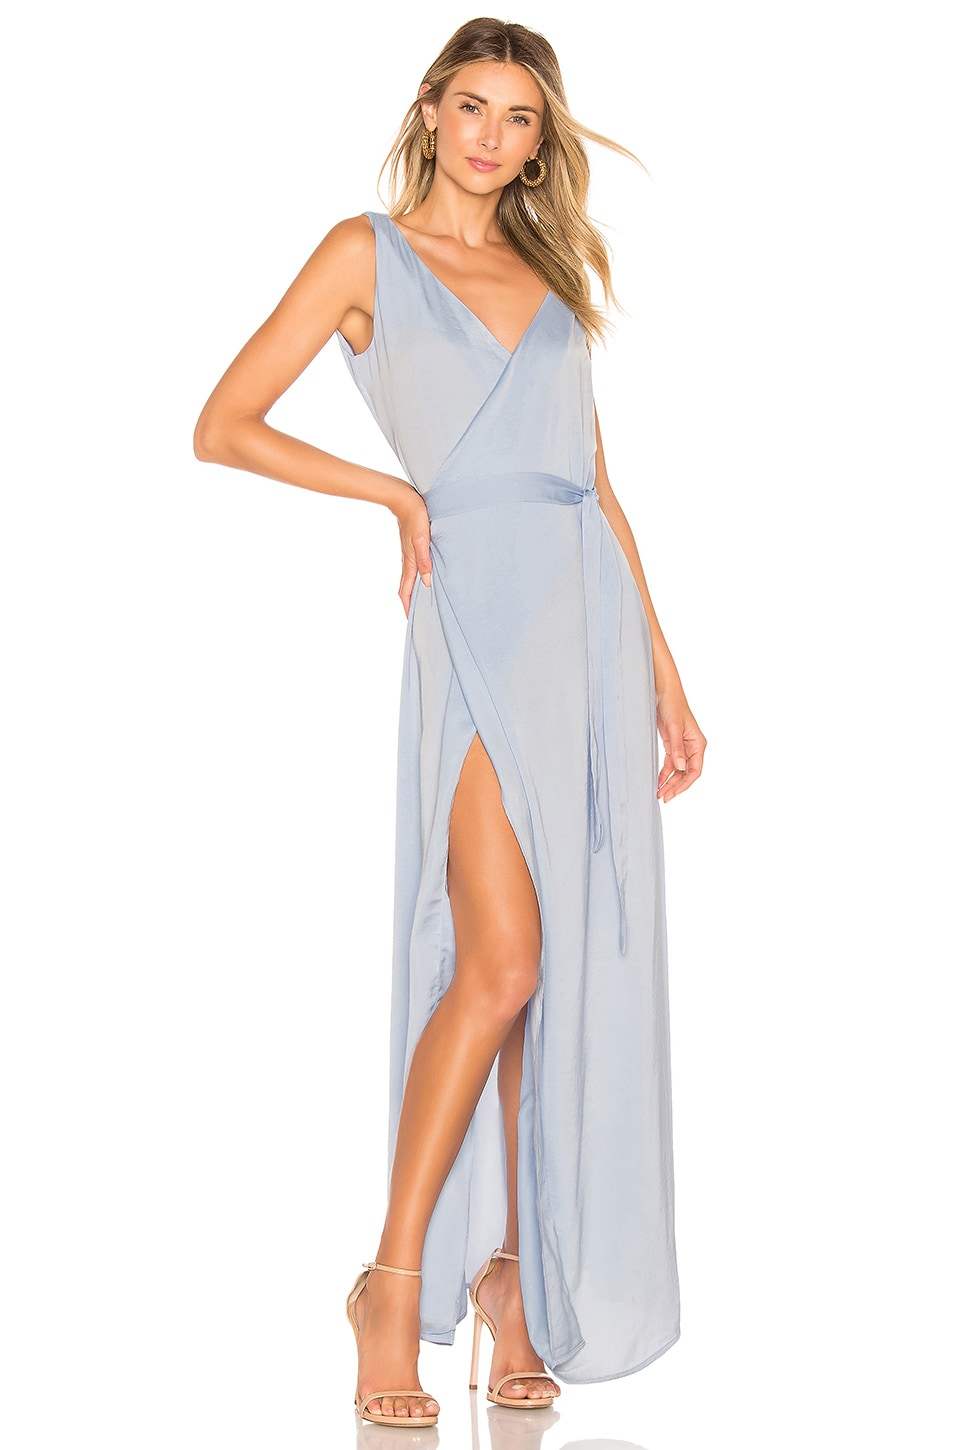 Aeryne Emanuelle Dress in Bleu Ciel